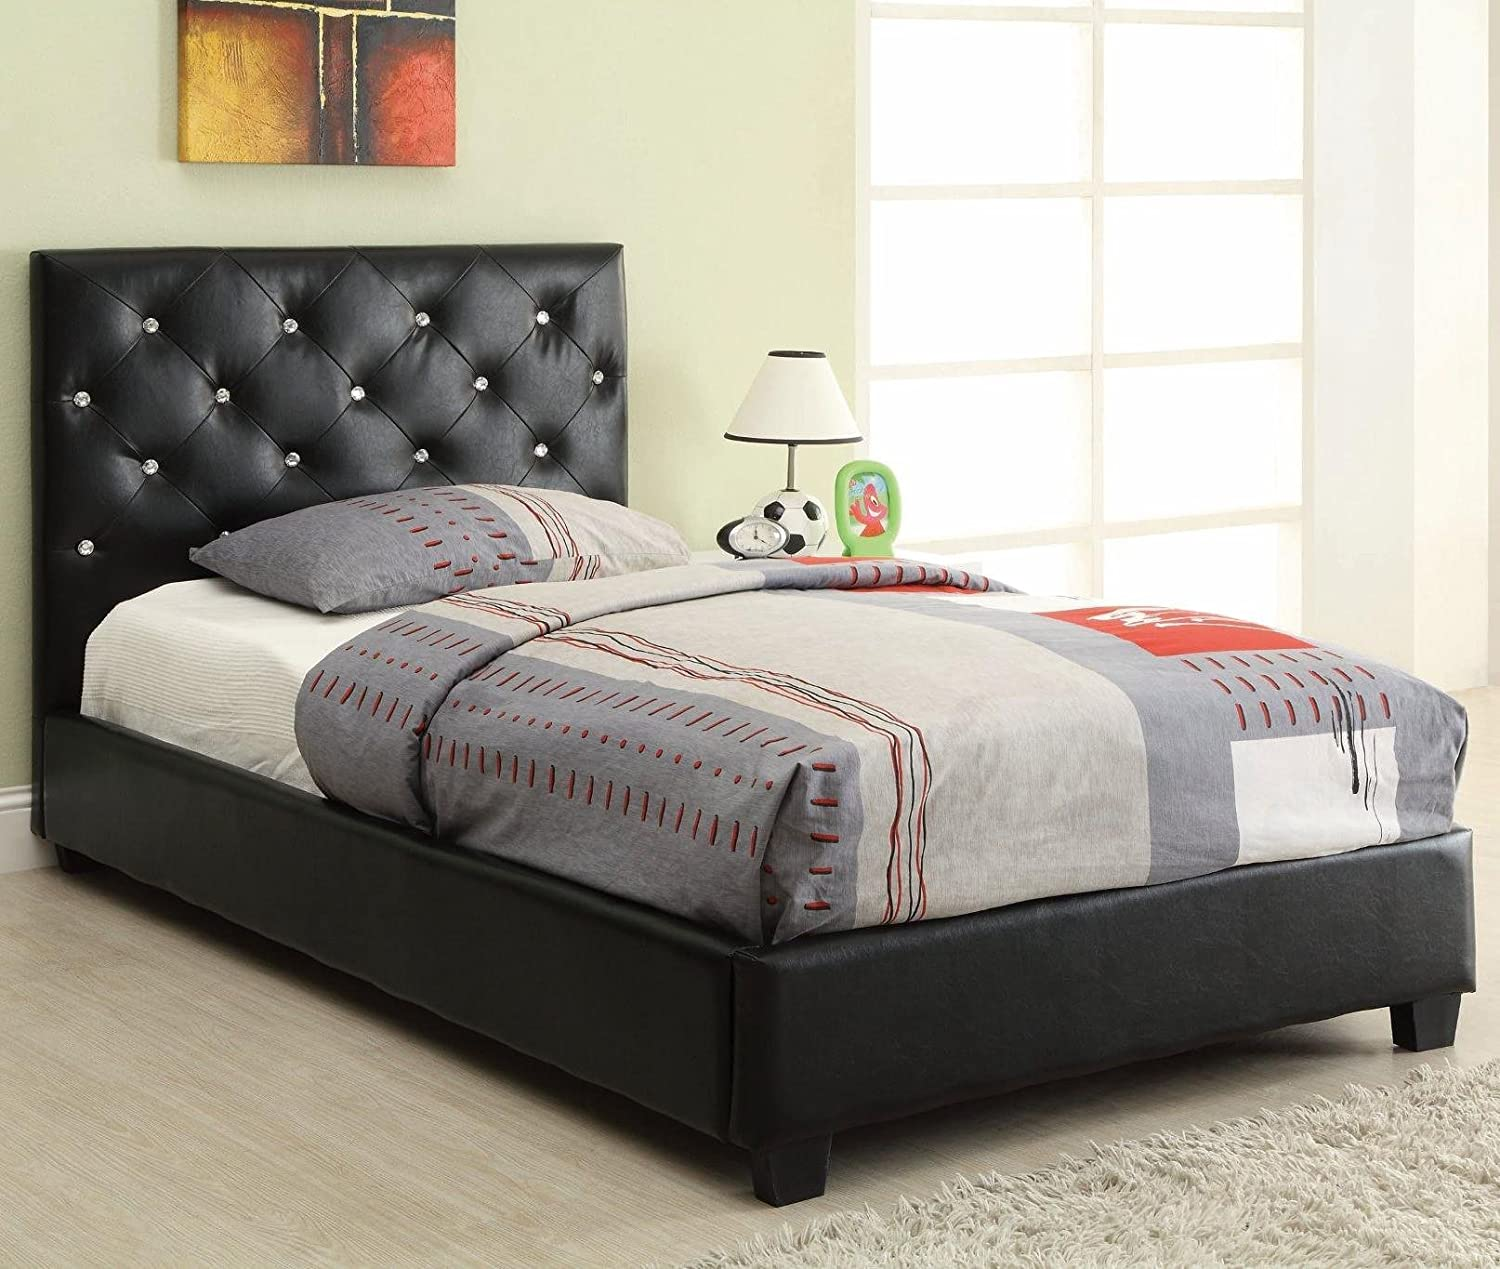 amazoncom  coaster furniture t regina upholstered twin bed  - amazoncom  coaster furniture t regina upholstered twin bed withbutton tufting  headboards